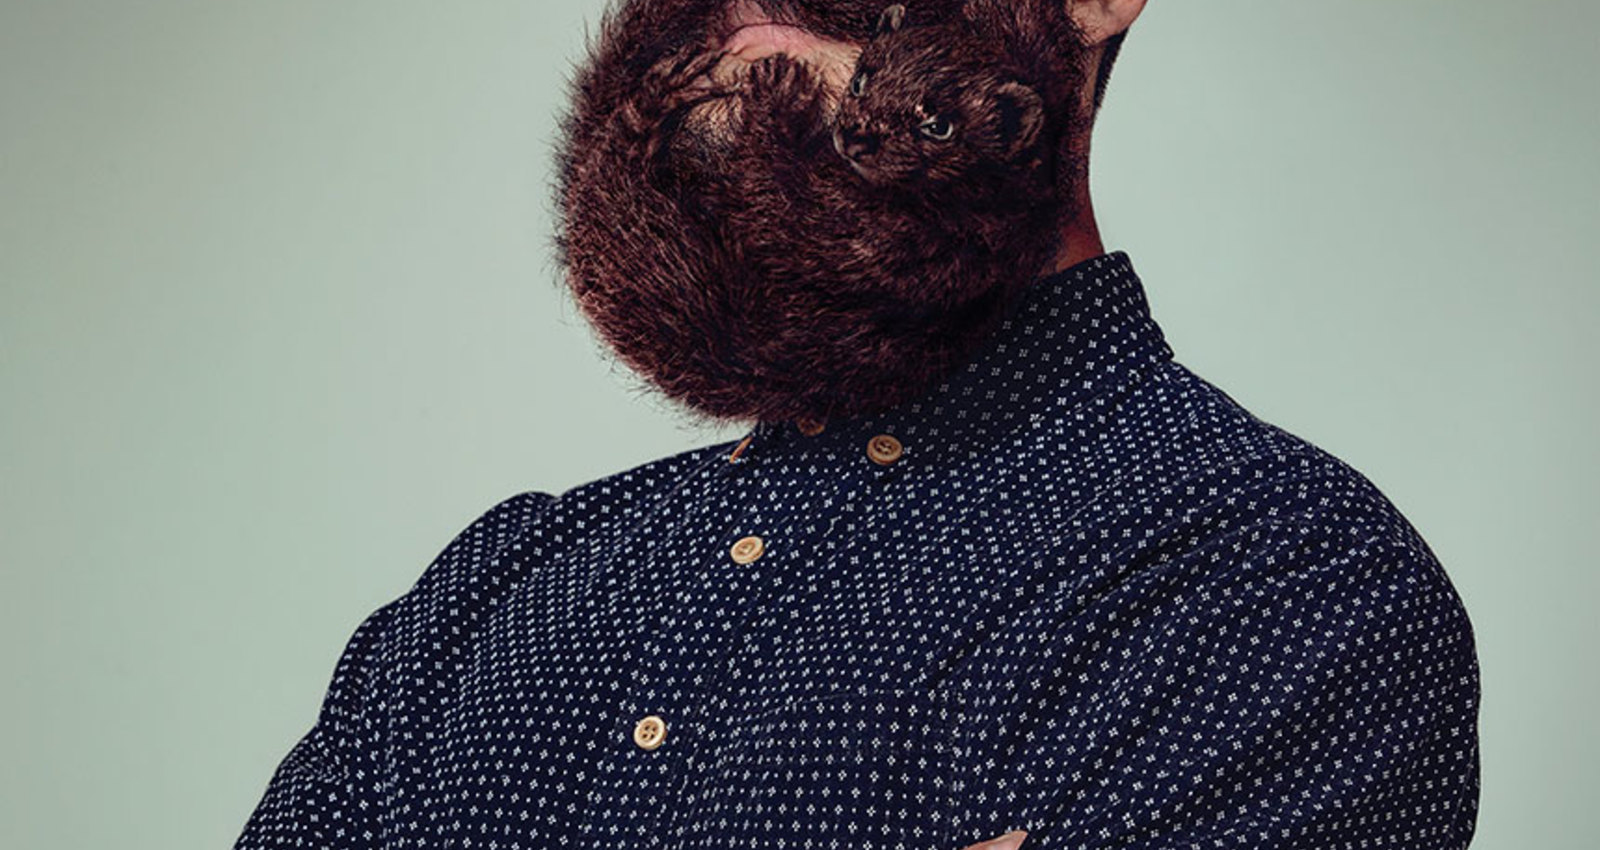 Animal Beards